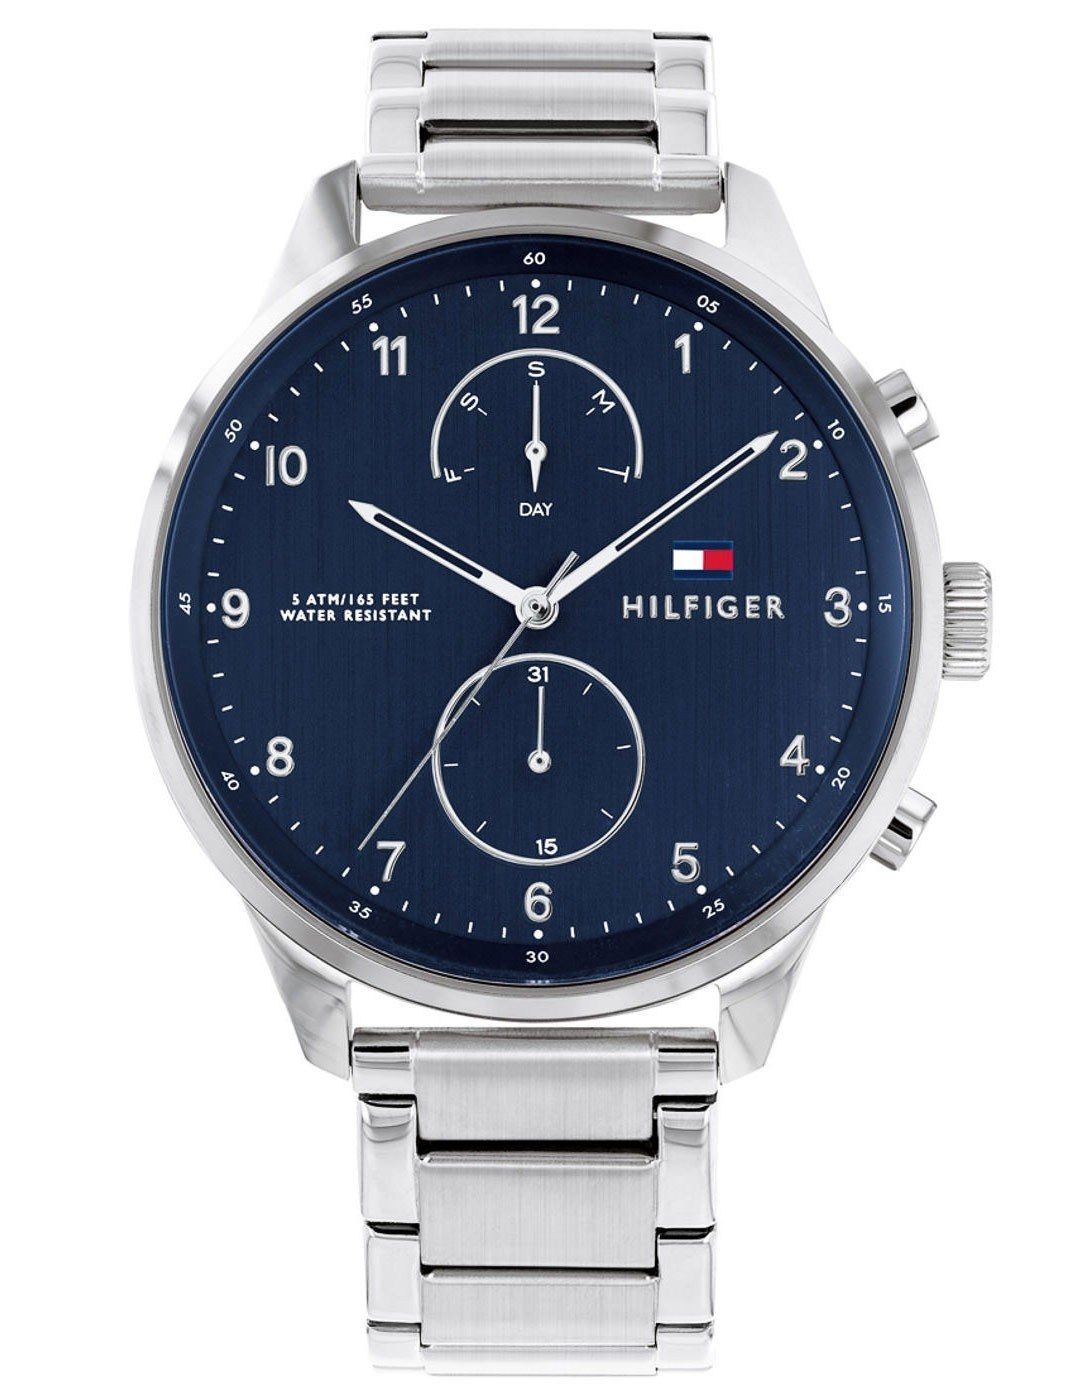 TOMMY HILFIGER CHASE  - 1791575